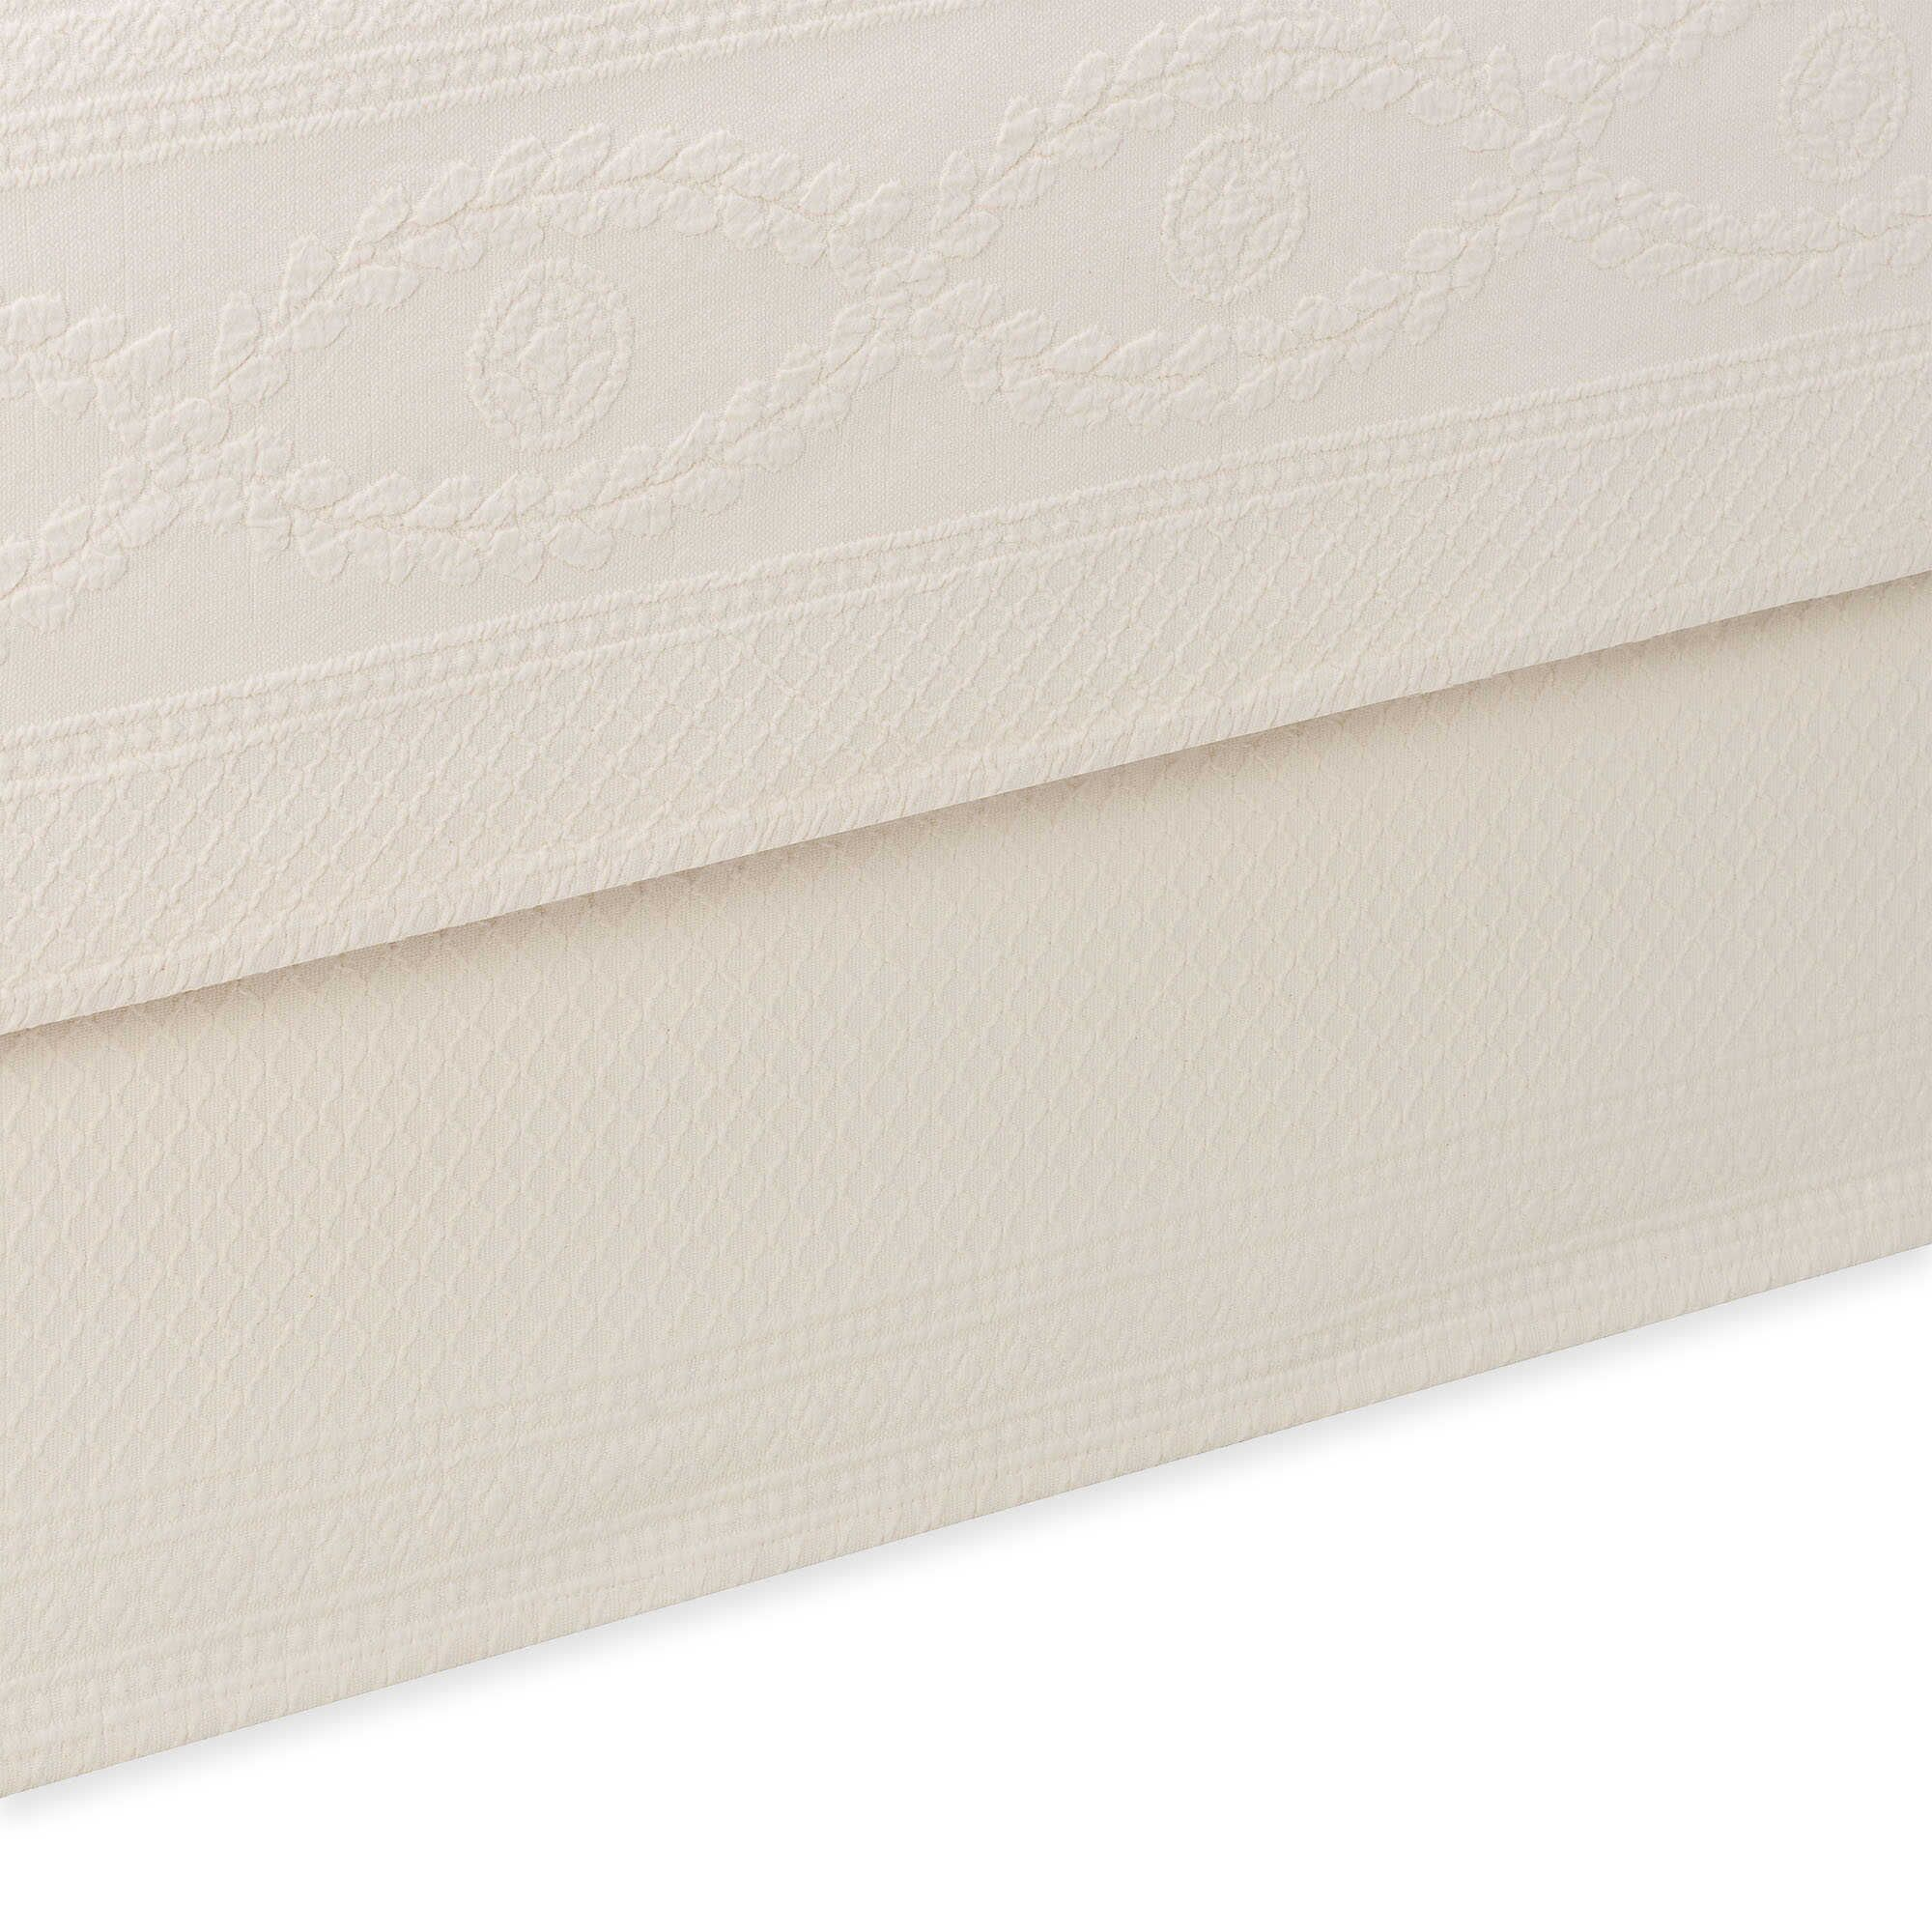 Williamsburg Abby Bed Skirt Color: Ivory, Size: King